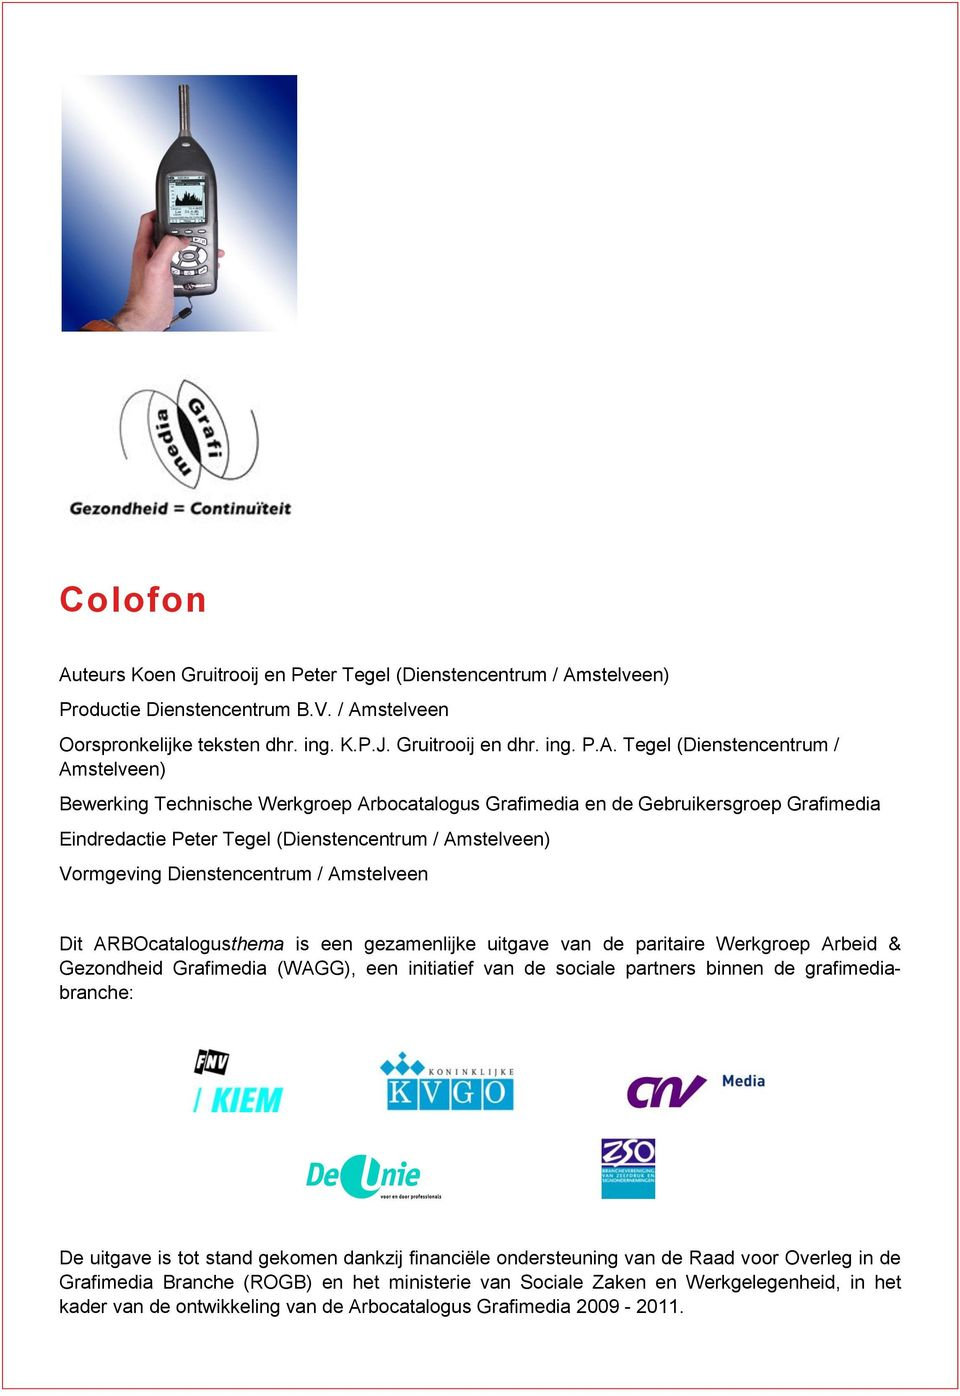 stelveen) Productie Dienstencentrum B.V. / Am